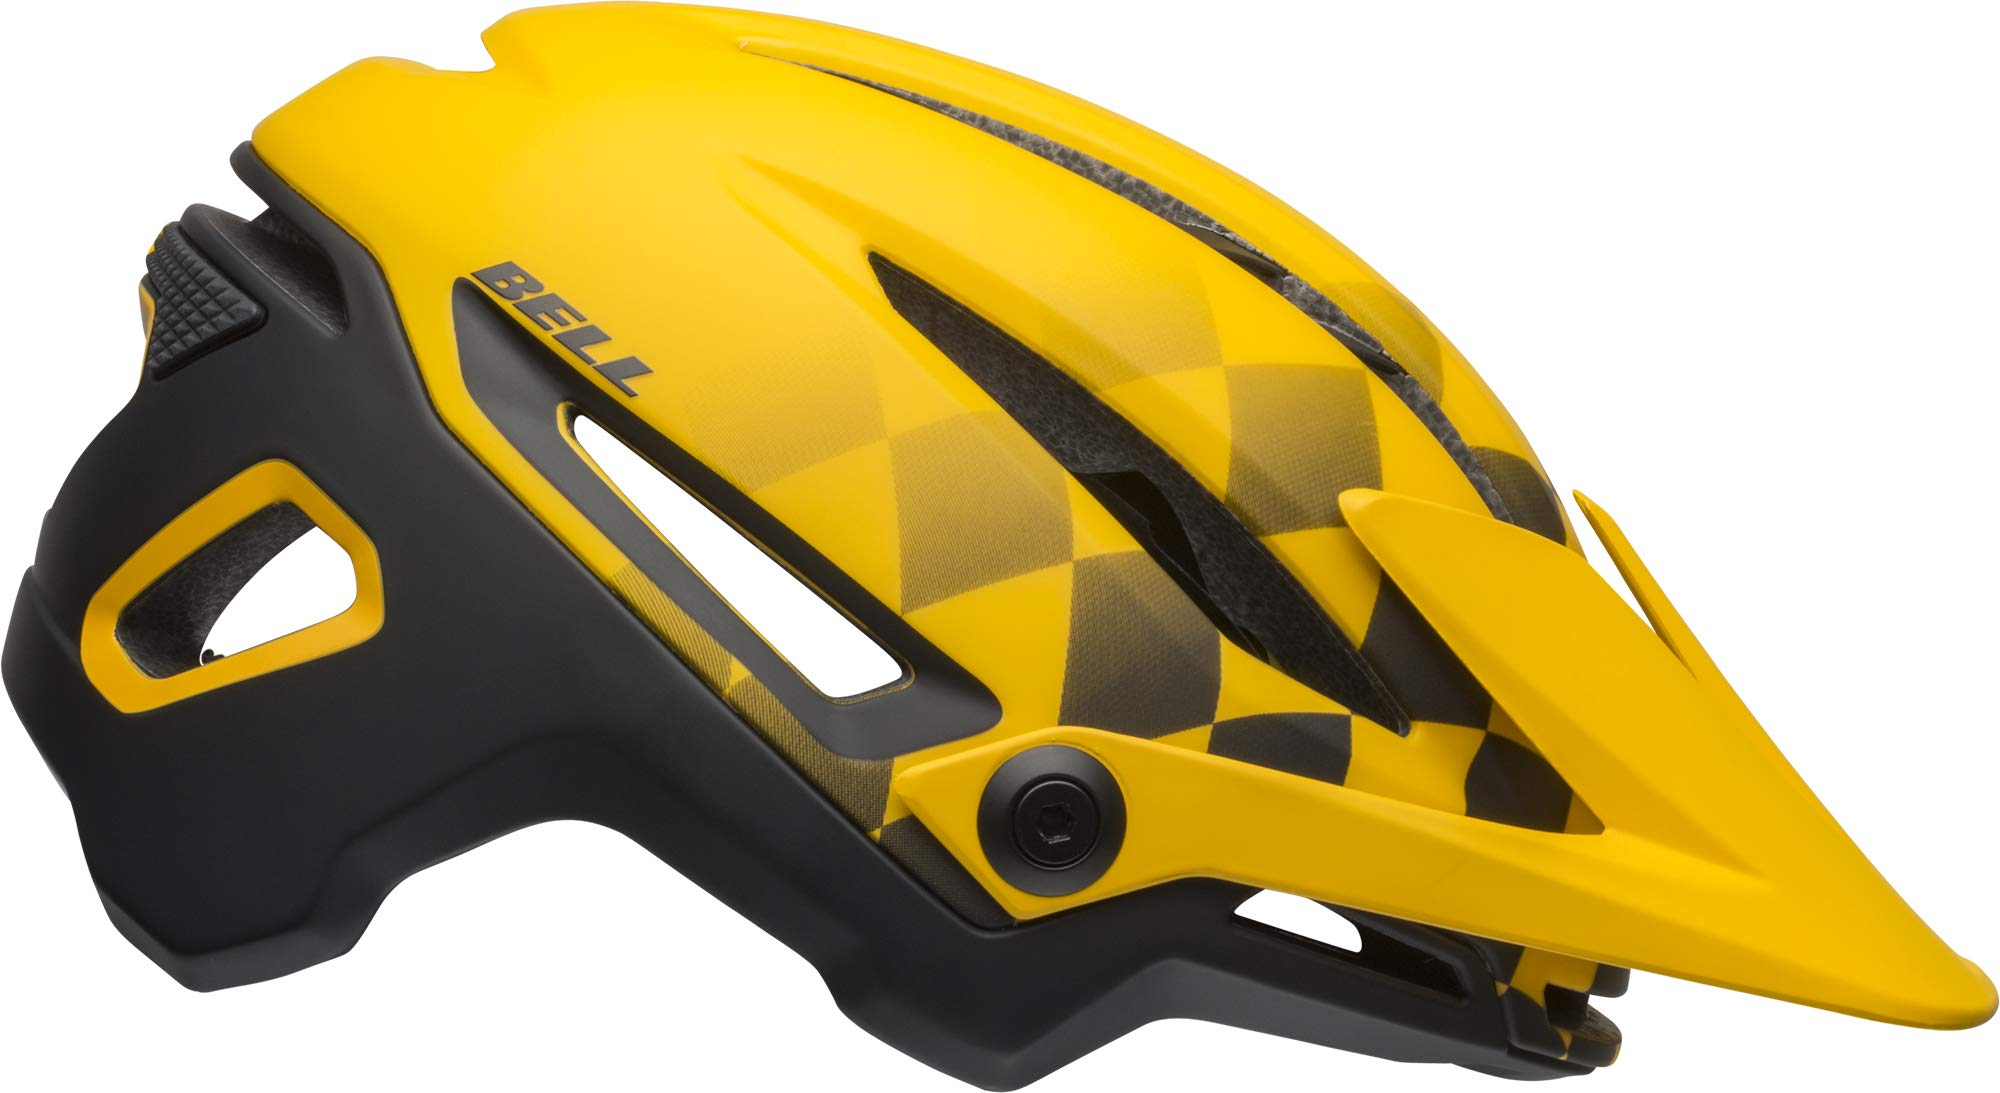 Bell Sixer MIPS Adult MTB Bike Helmet (Finish Line Matte Yellow/Black (2019), Large)